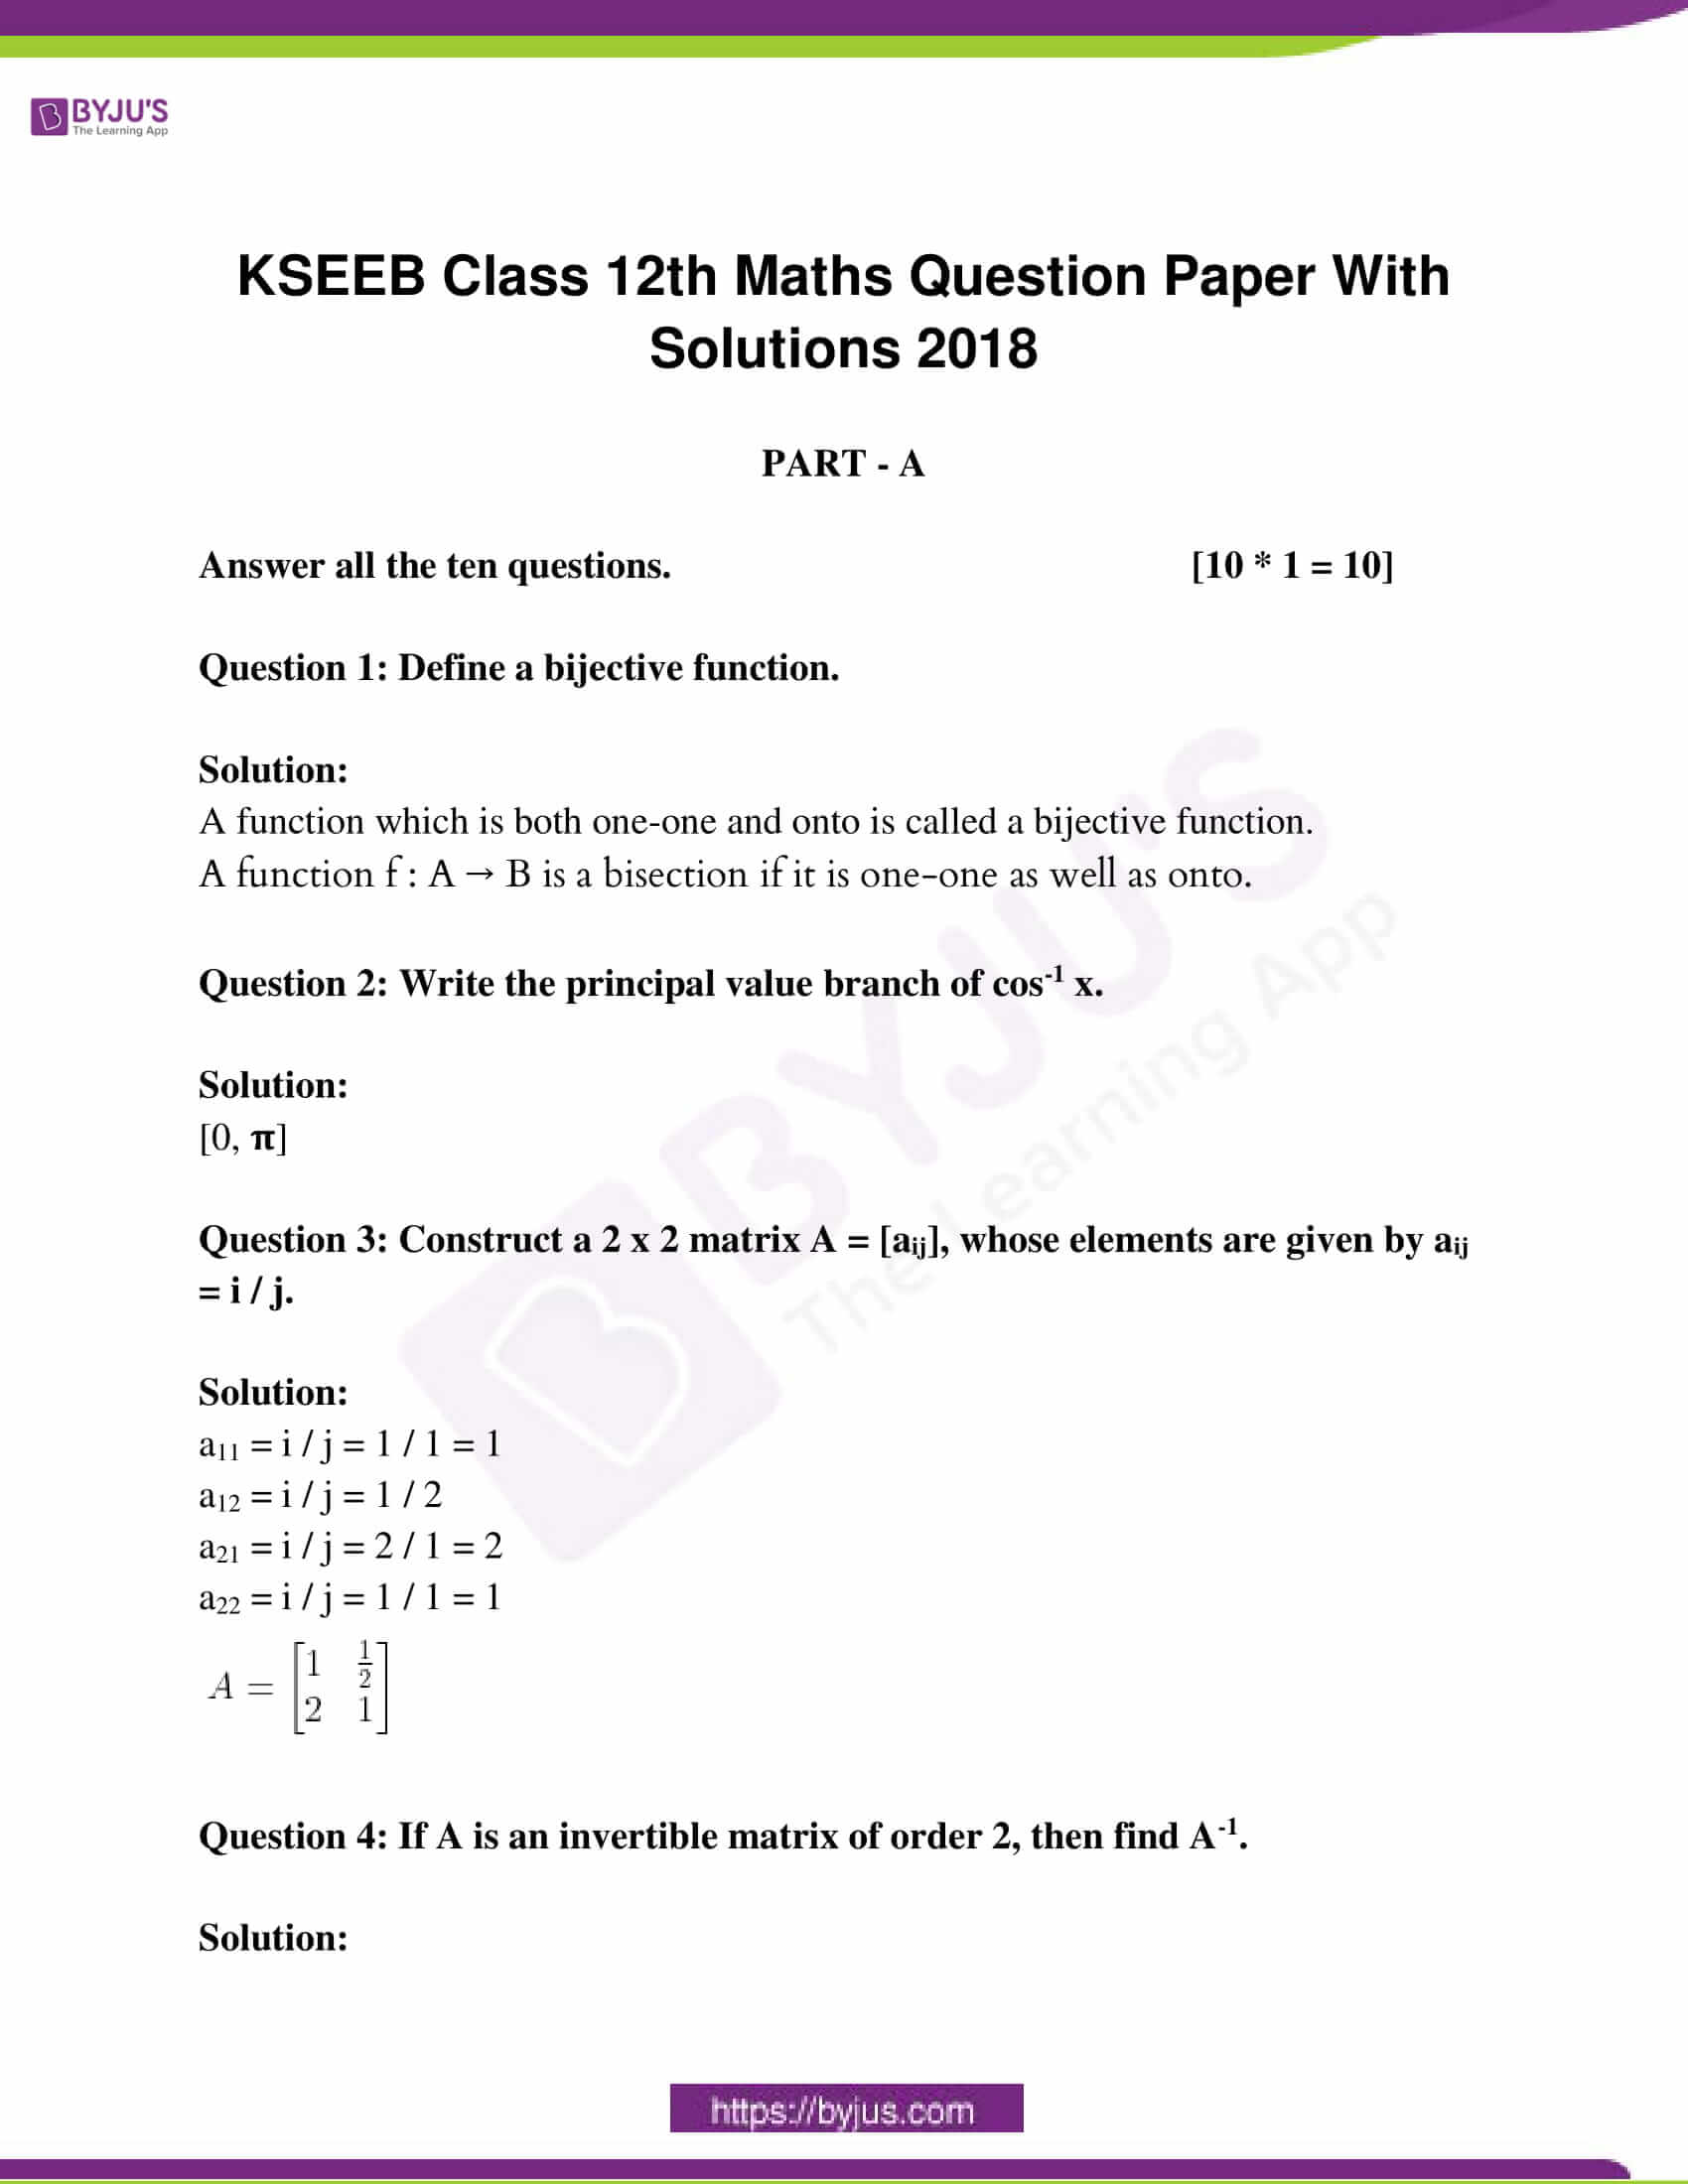 kseeb class 12 exam question paper solutions march 2018 01